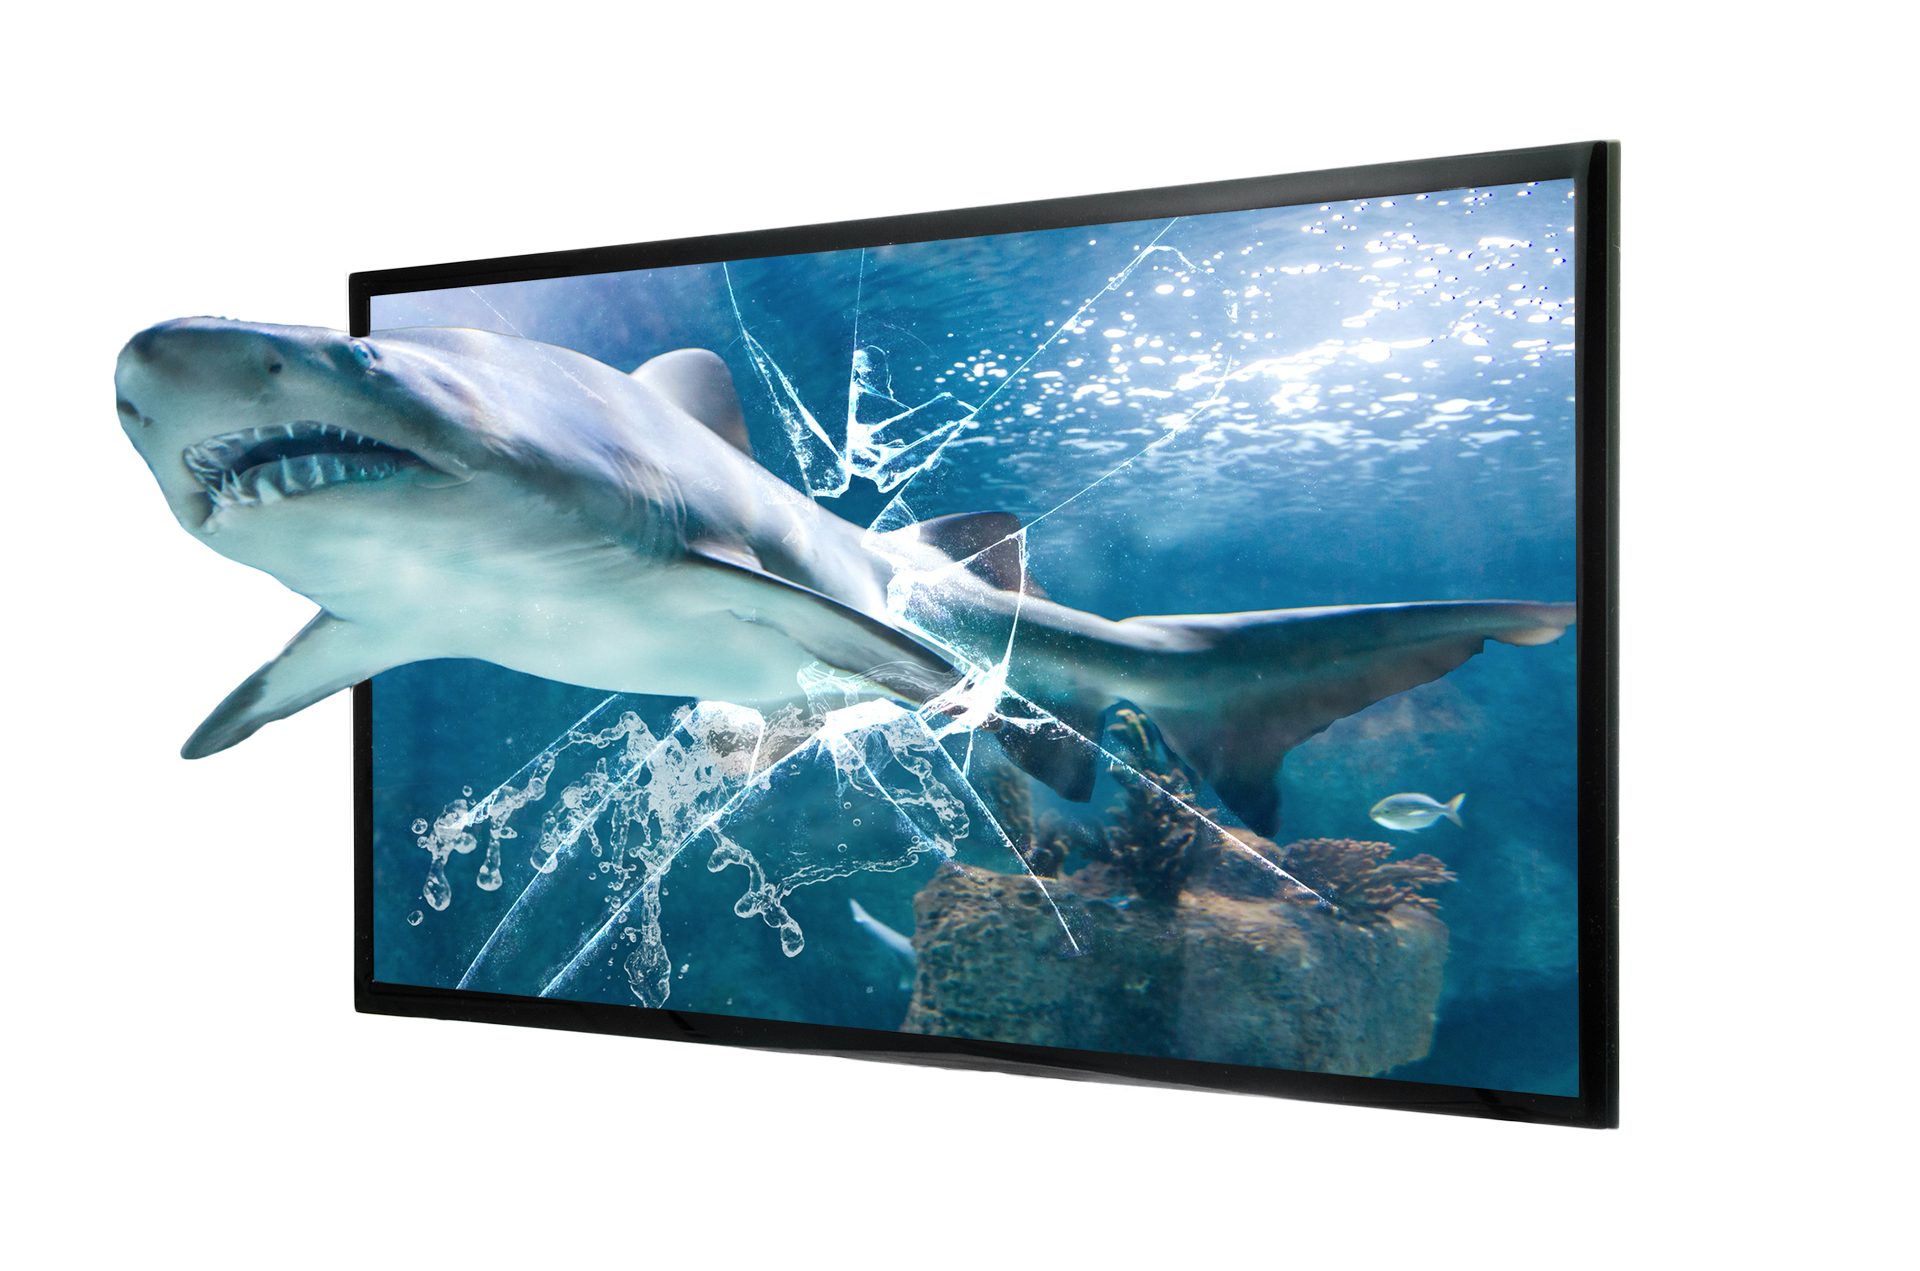 3D Shark jumping through television screen